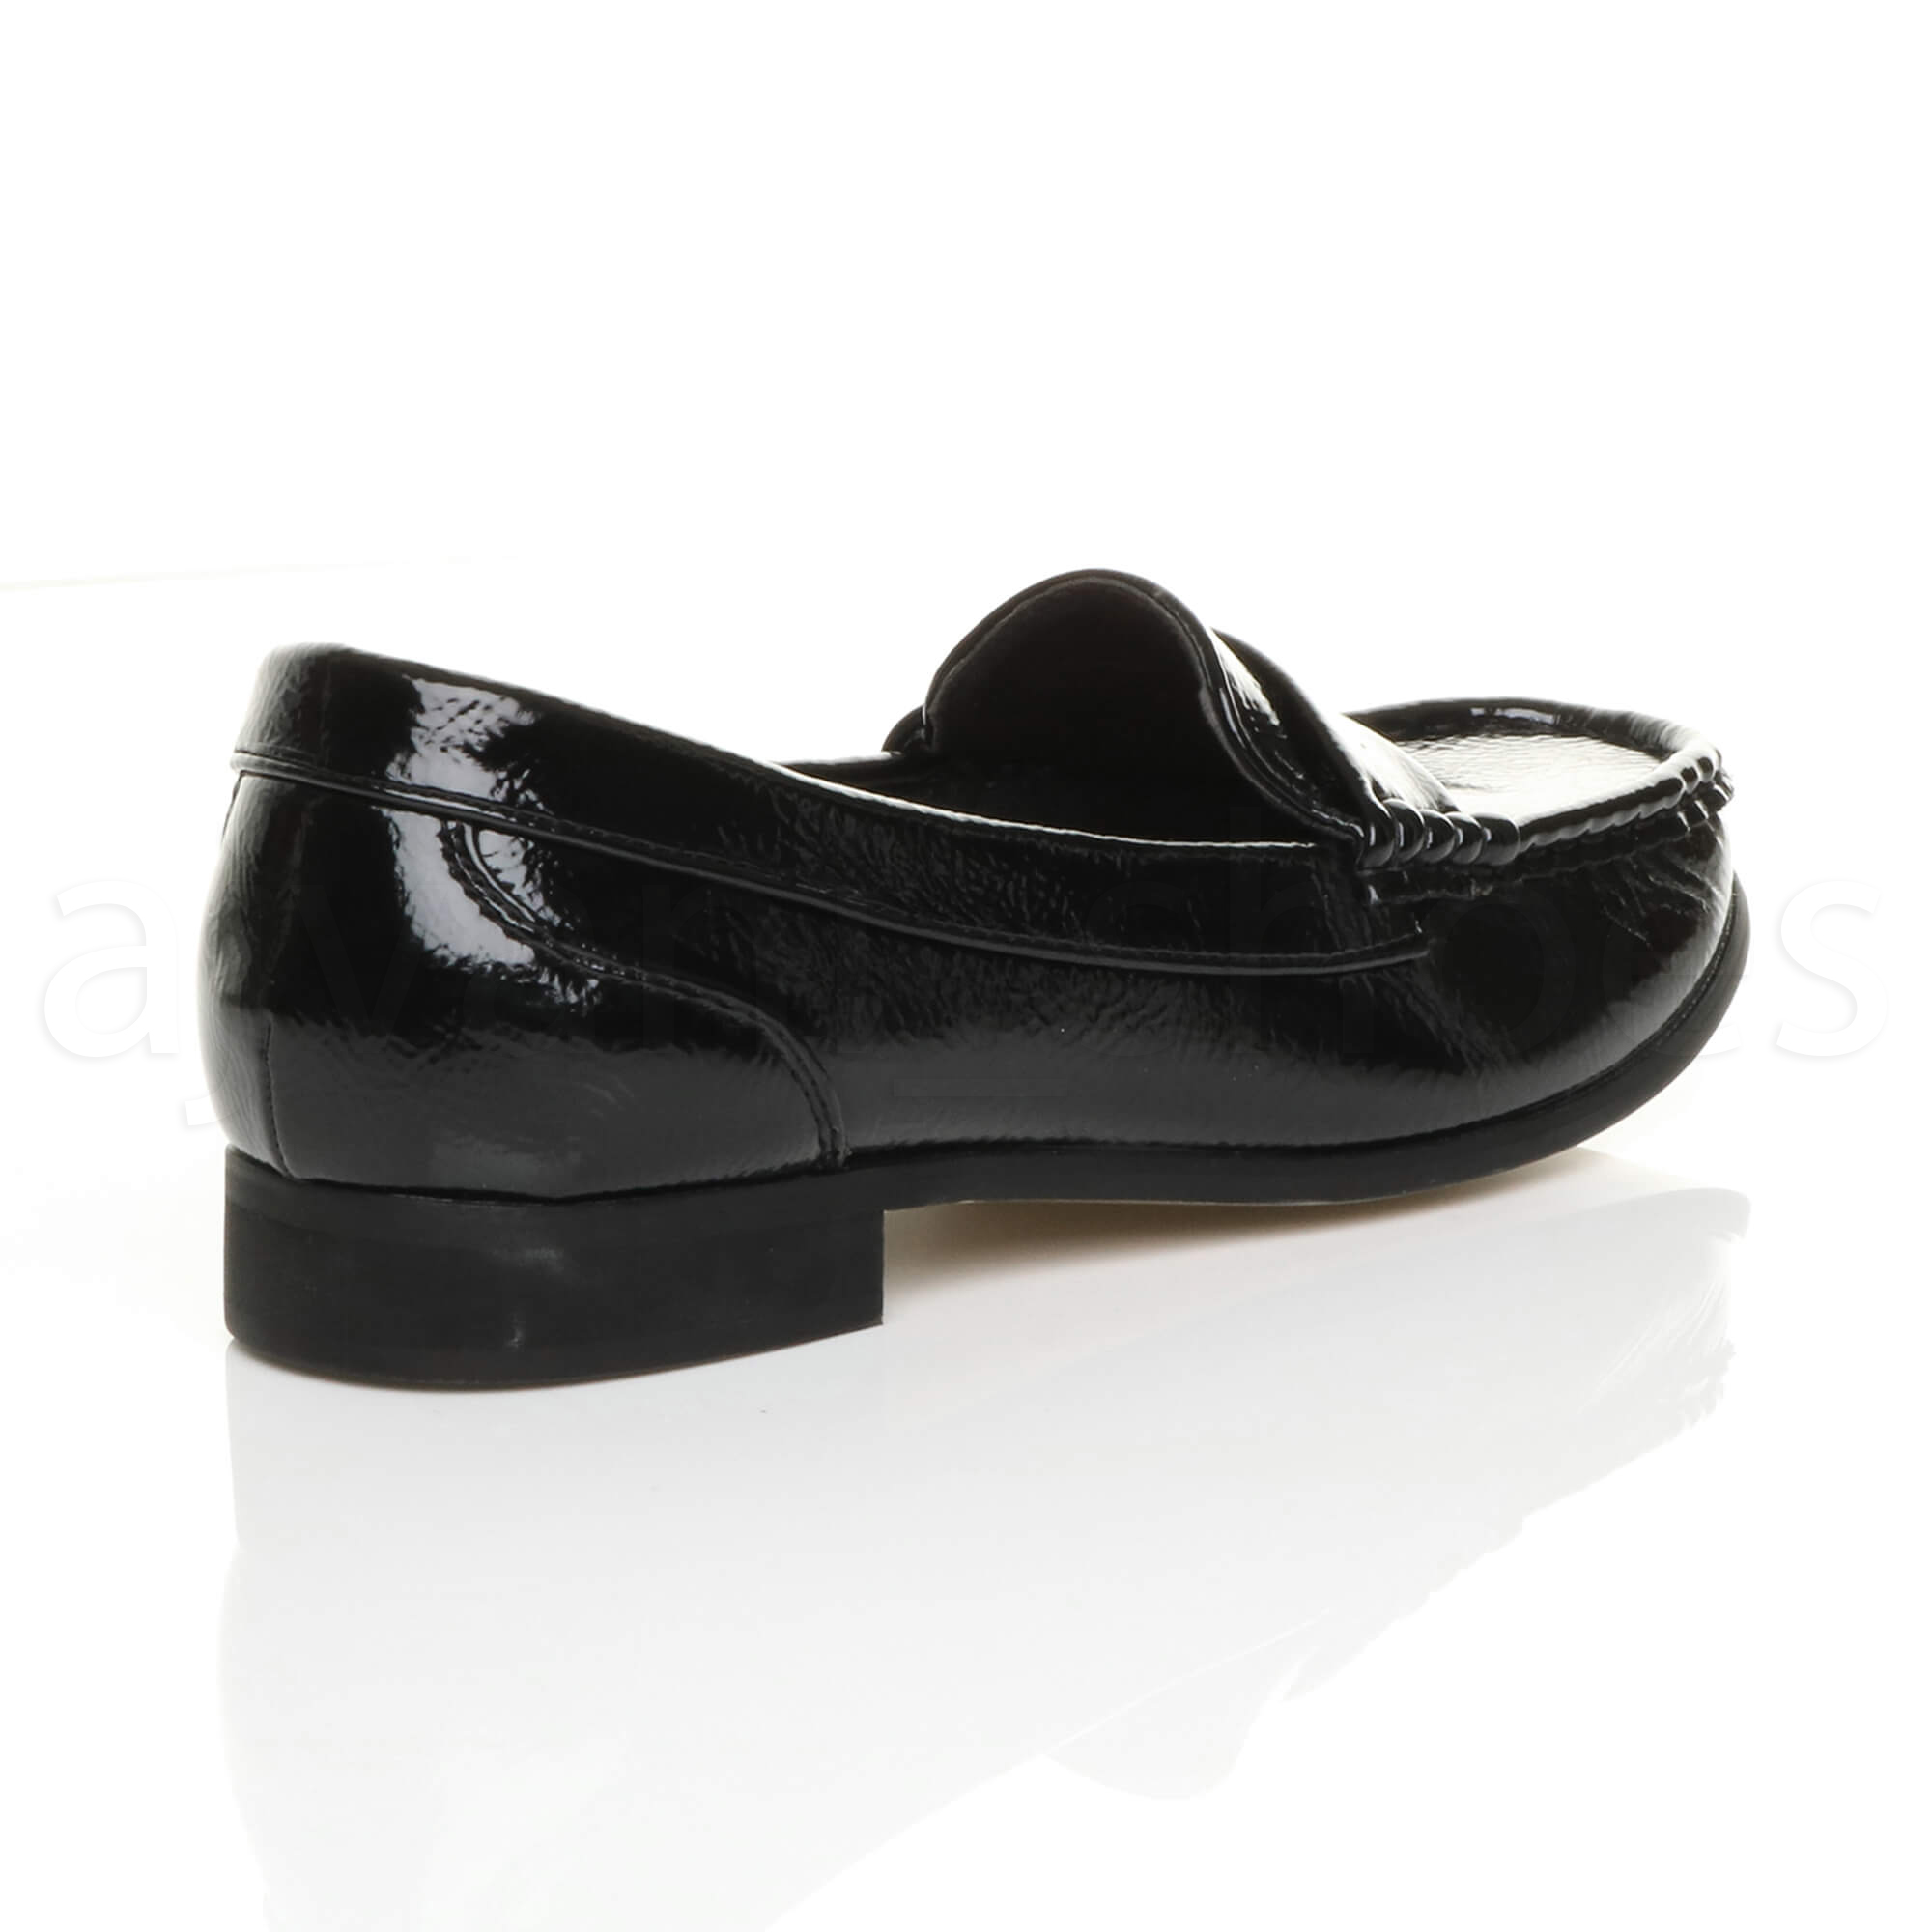 Ladies Wedge Loafer Shoes